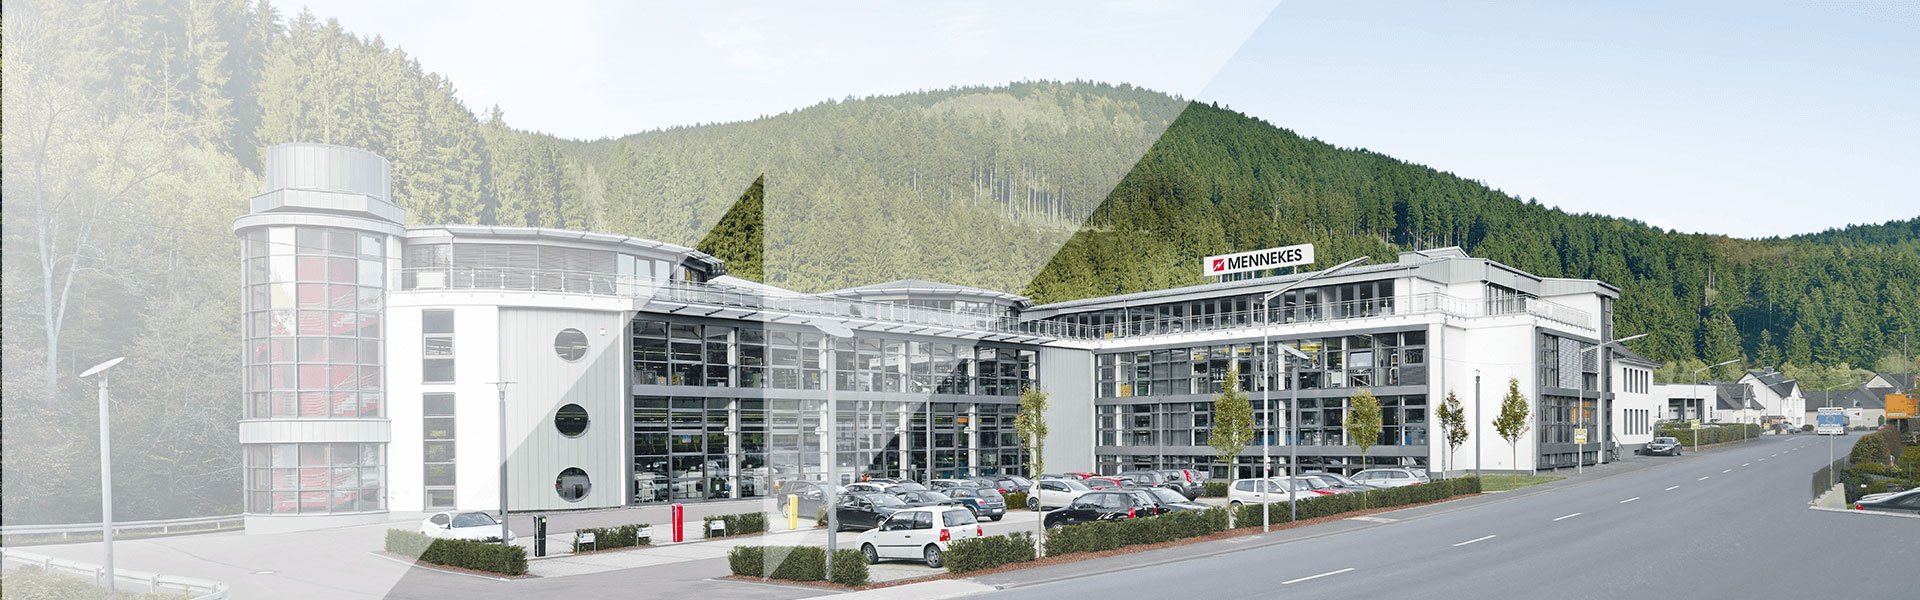 A picture showing the company building of MENNEKES Elektrotechnik